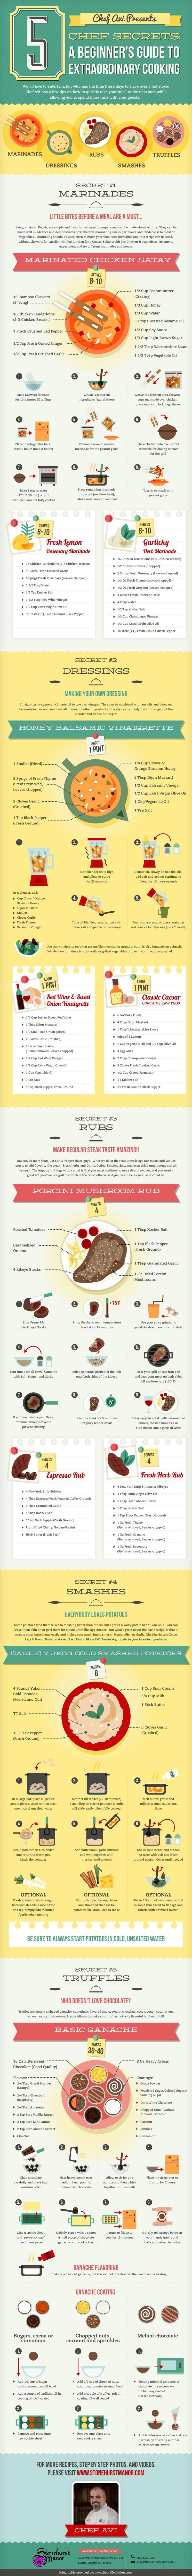 5 Chef Secrets: A Beginner's Guide To Extraordinary Cooking #Infographic